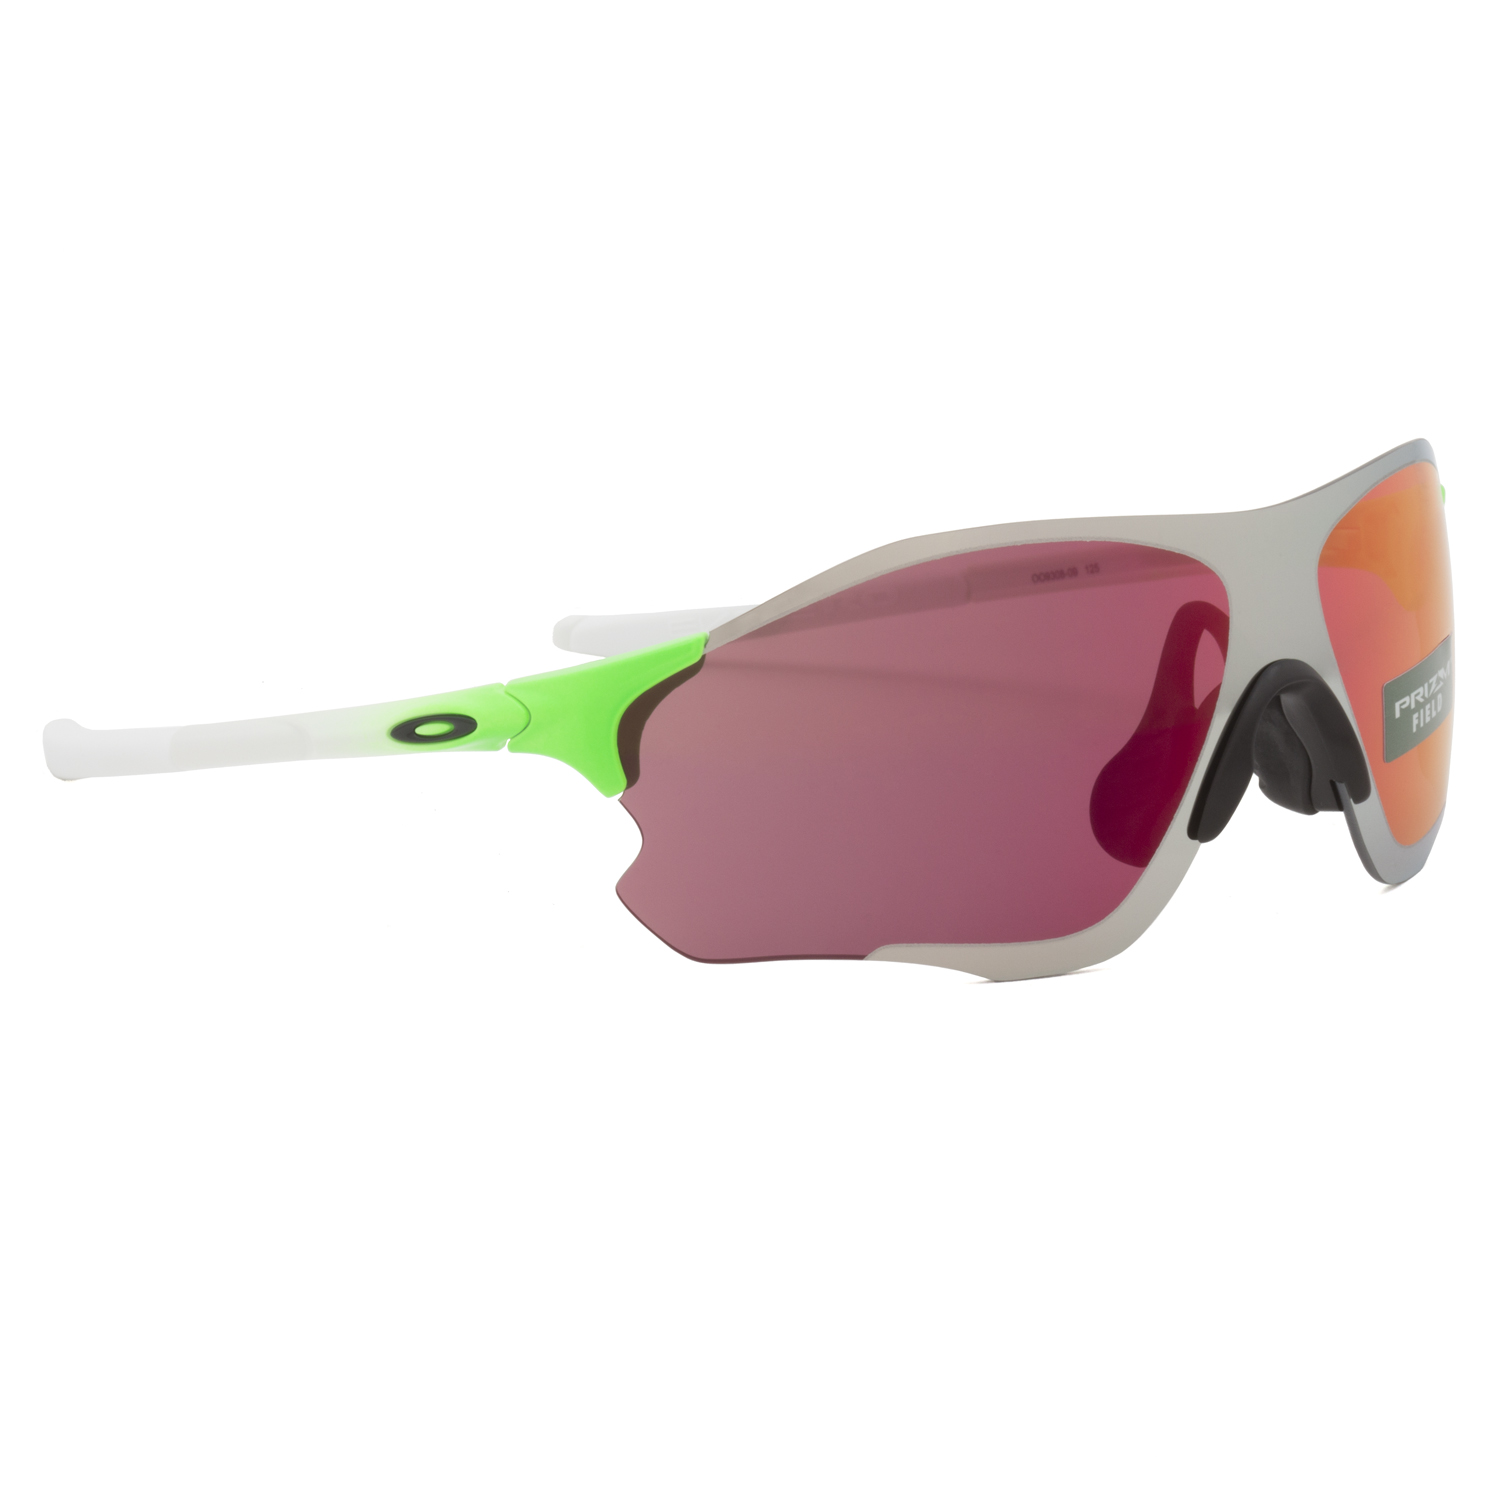 fa54d5443cb Difference Between Oakley Radar Asian Fit And Regular « Heritage Malta